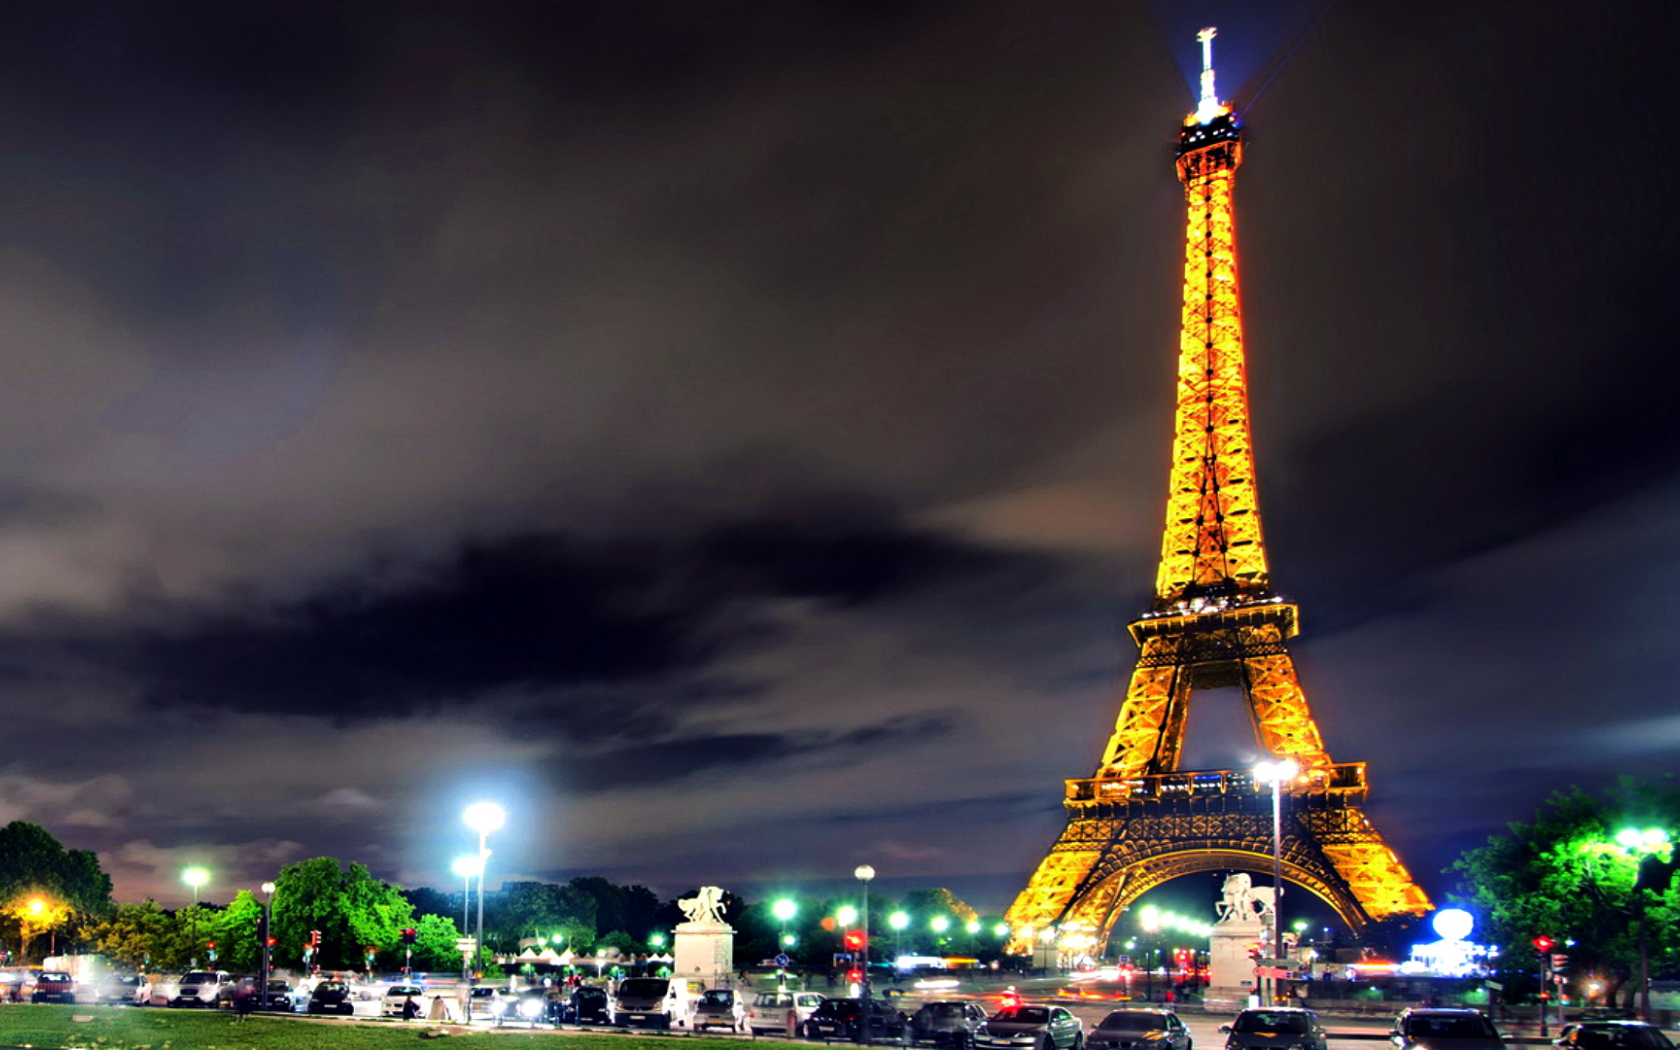 Cute Eiffel Tower Wallpaper Tumblr 10 1920x1080 Download Resolutions Desktop